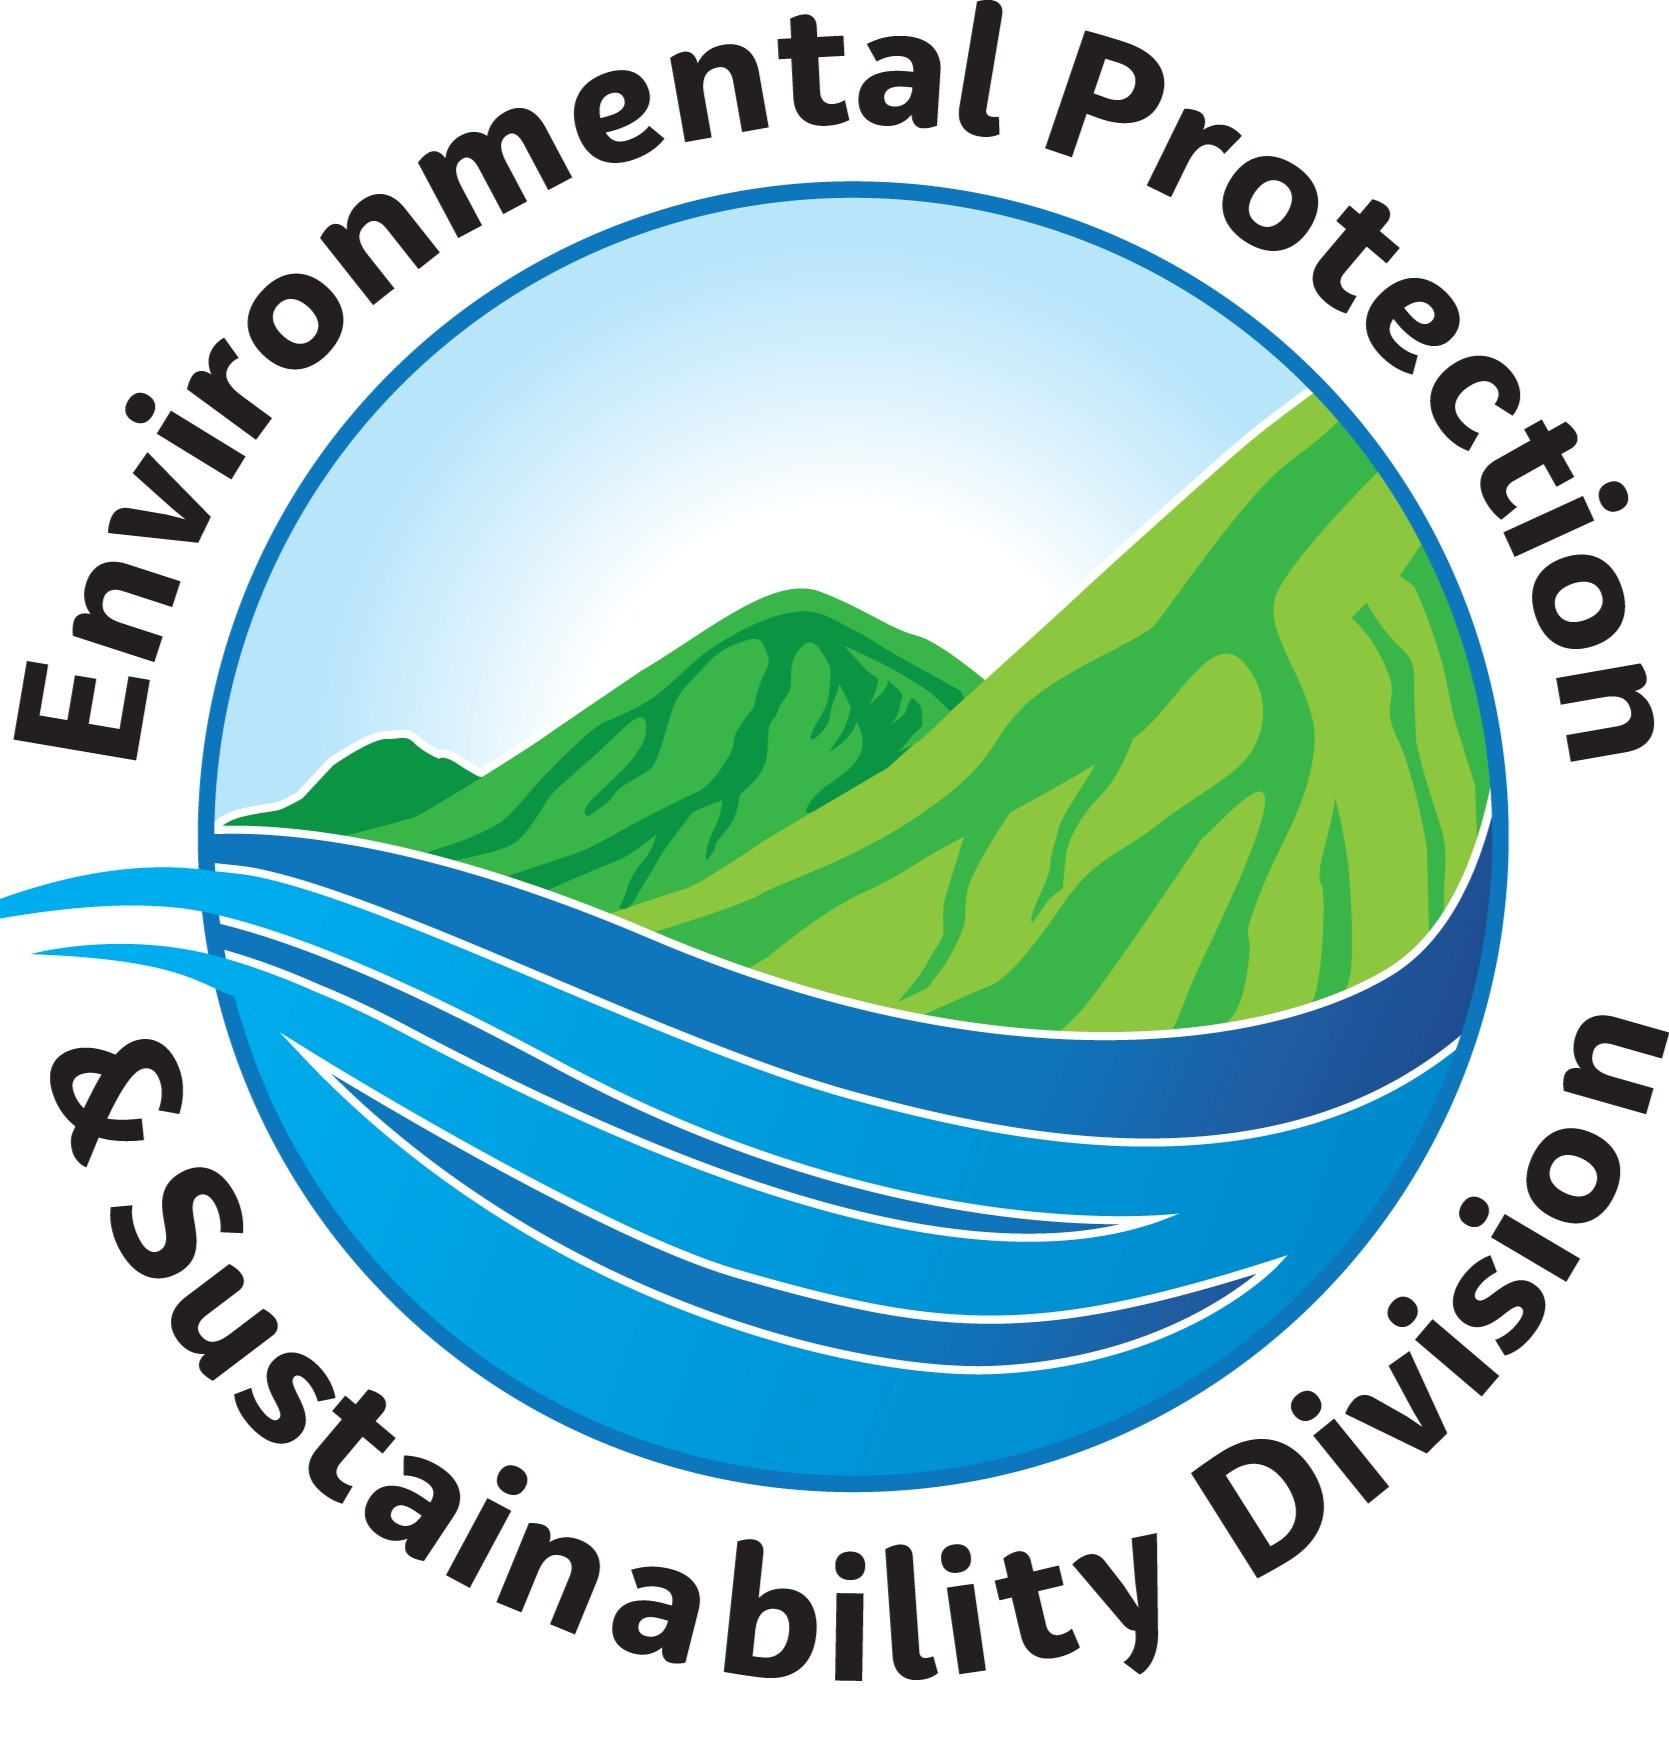 Maui County Environmental Protection & Sustainability Division